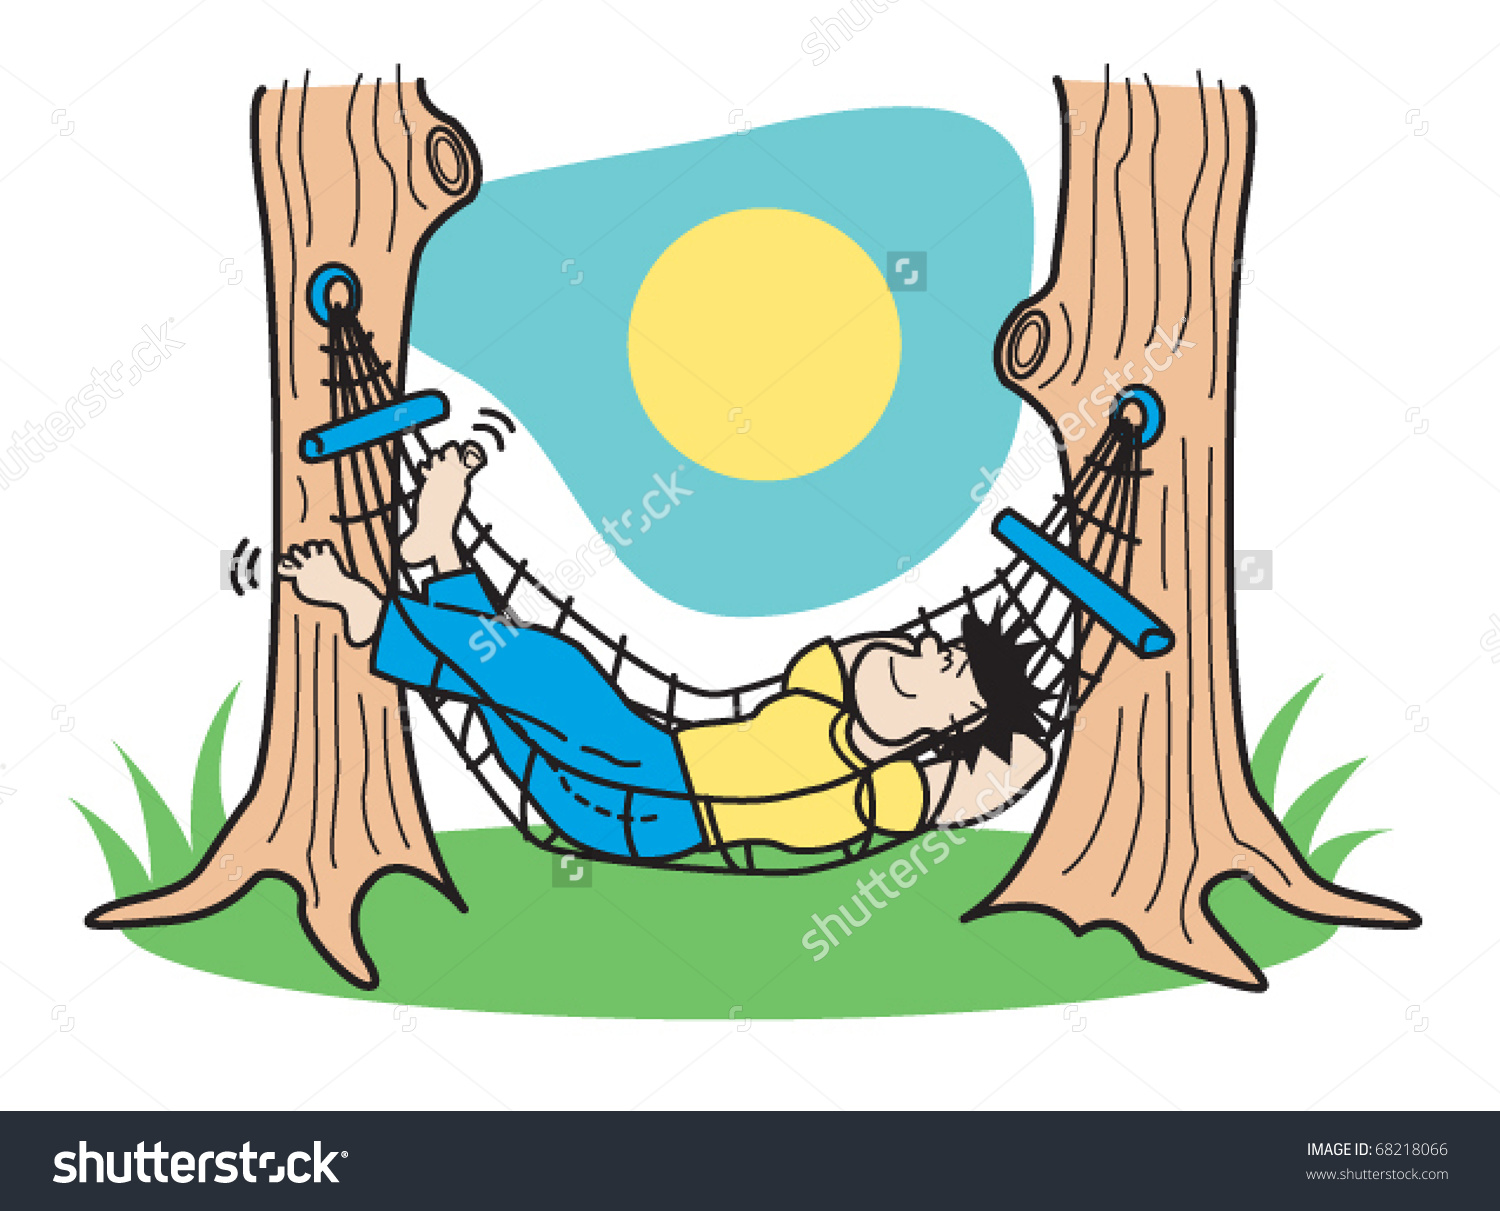 Hammock clipart #5, Download drawings